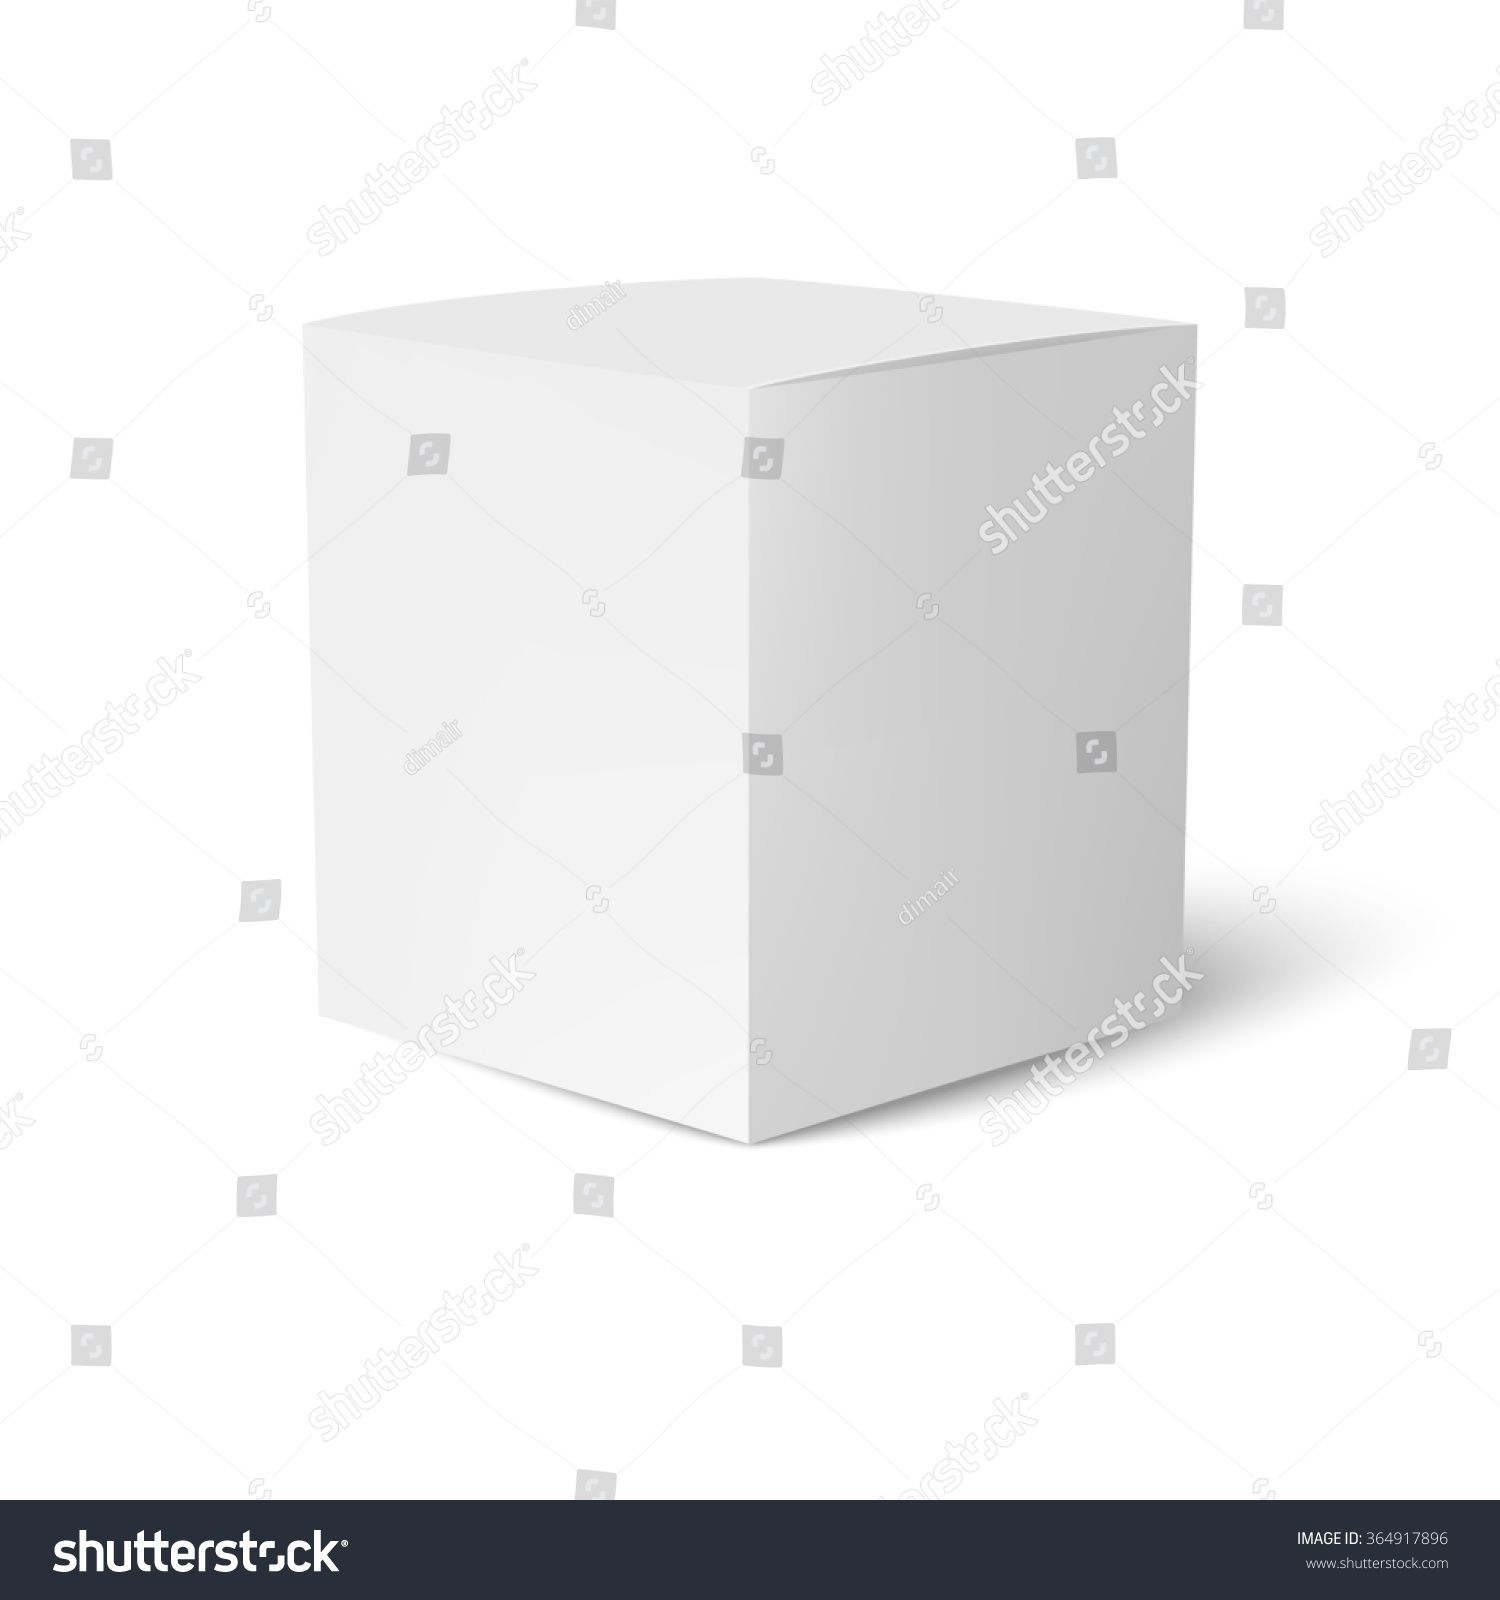 paper cardboard box template standing on stock illustration